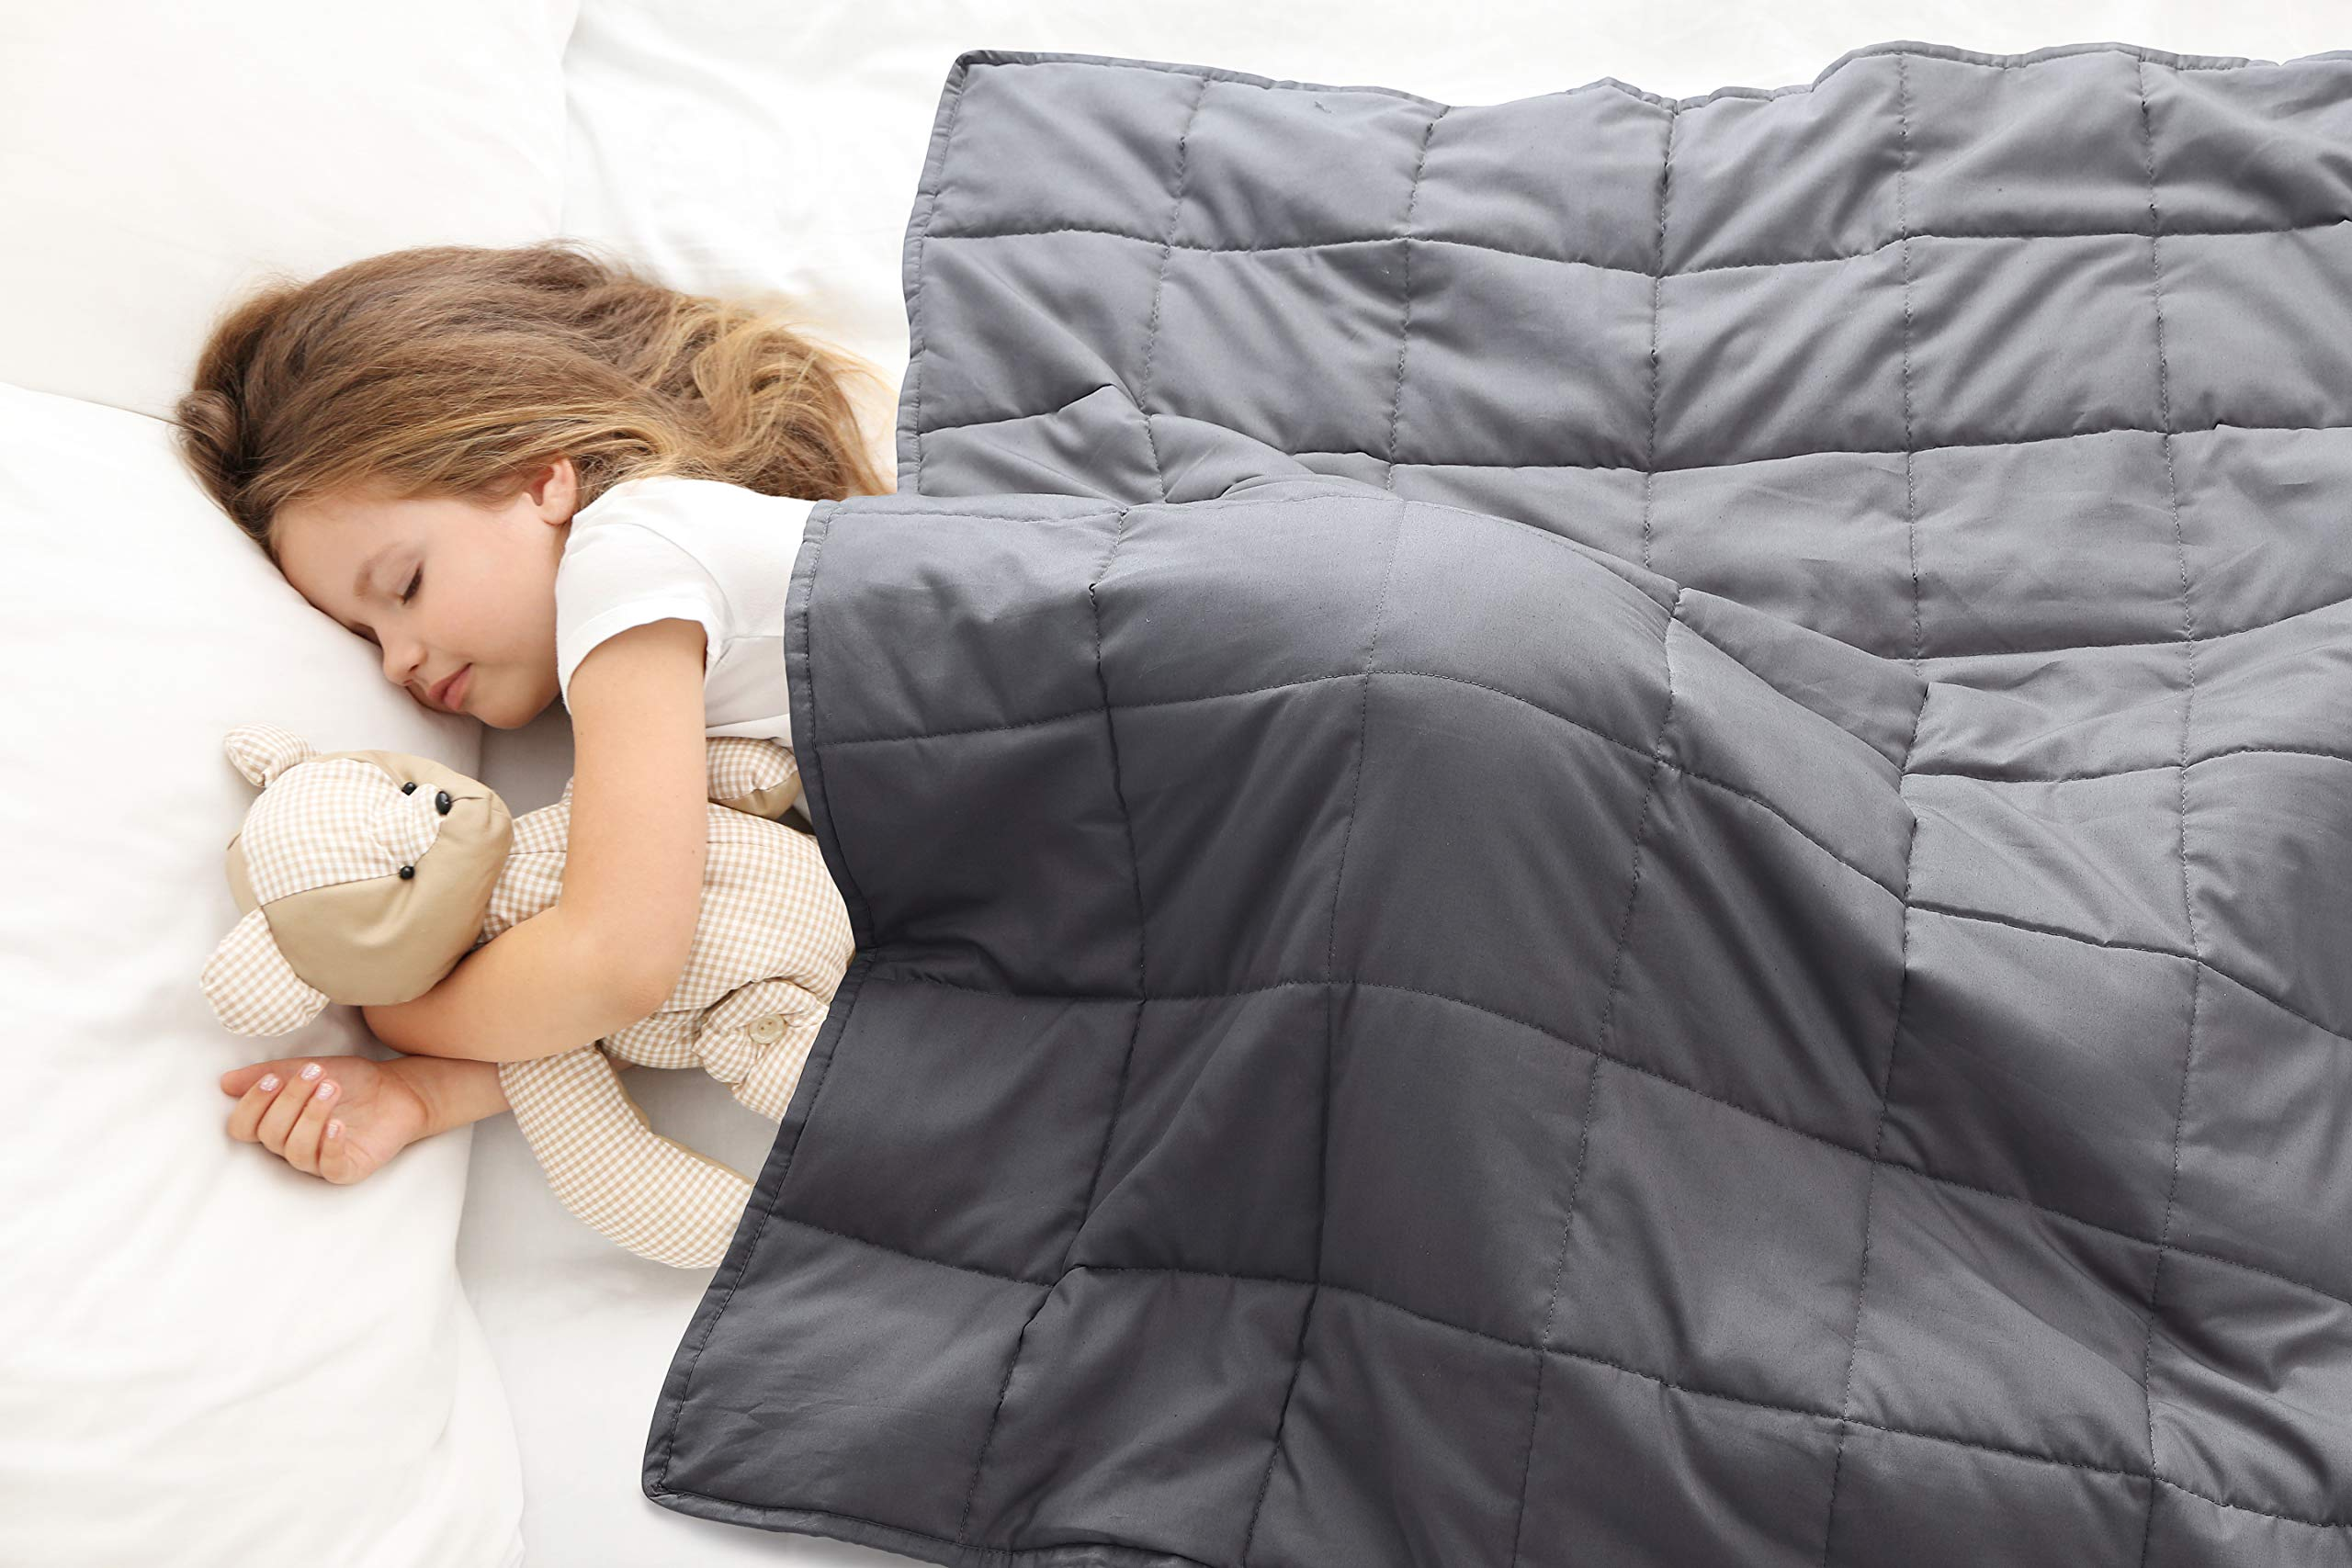 Love's cabin Weighted Blanket 5 lbs for Kids (36''x48'', Grey) 100% Organic Cotton Toddler Weighted Blanket with Glass Beads, Extra Soft Heavy Blanket (Anti-Dirty,Anti-mite,Incredible Touch) by Love's cabin